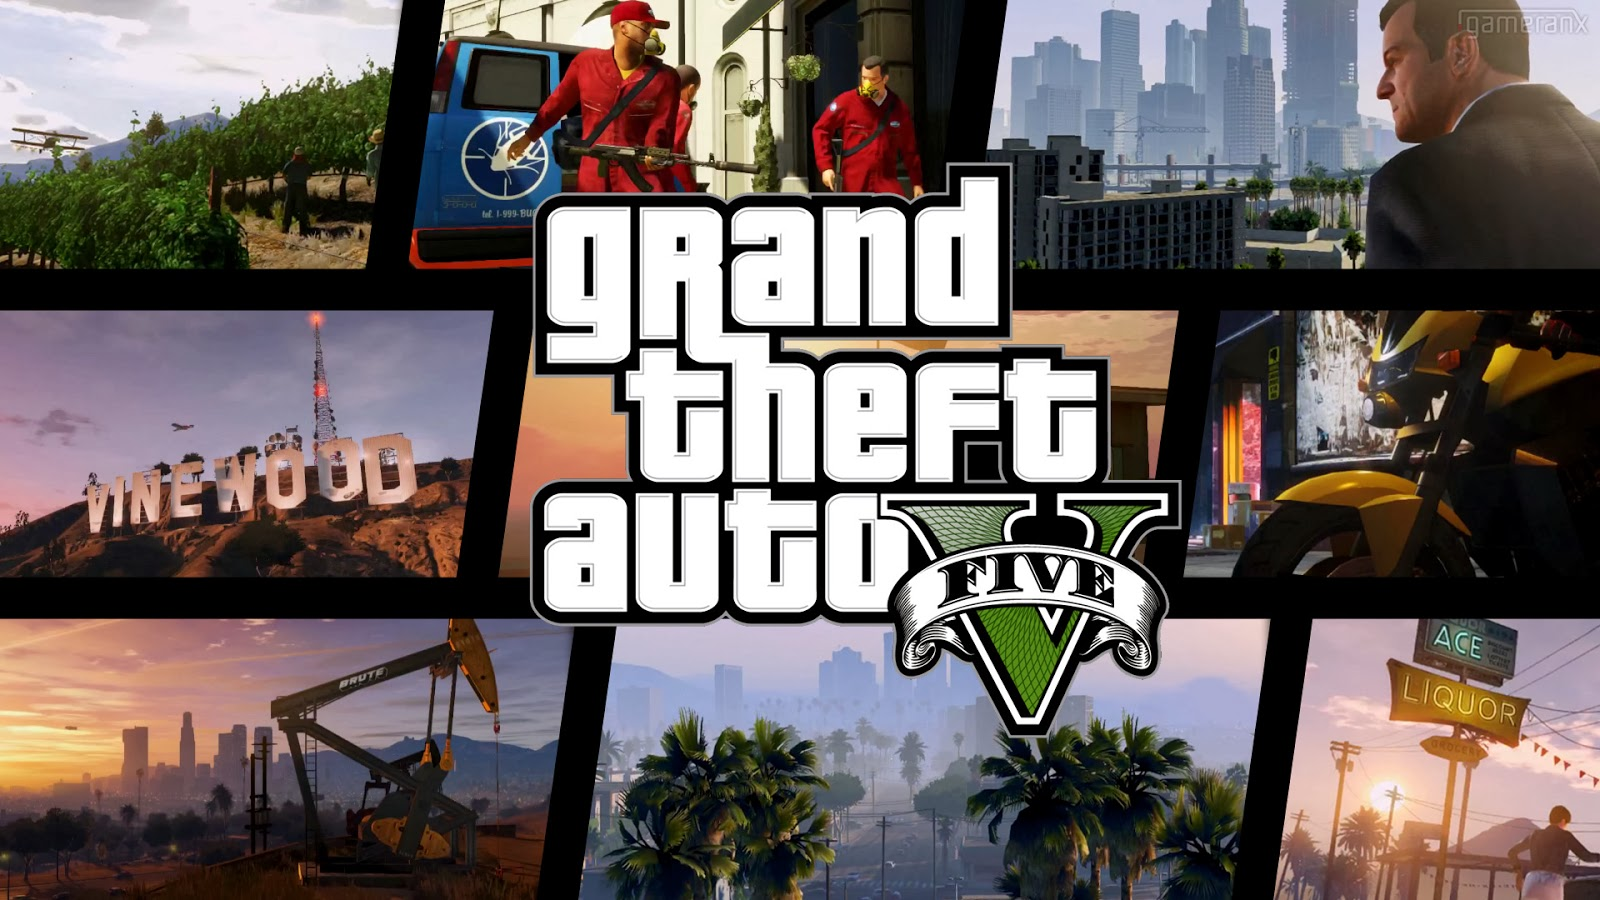 Image Gta V Hd Wallpaper Crying Sad Pictures Zoom 1600x900